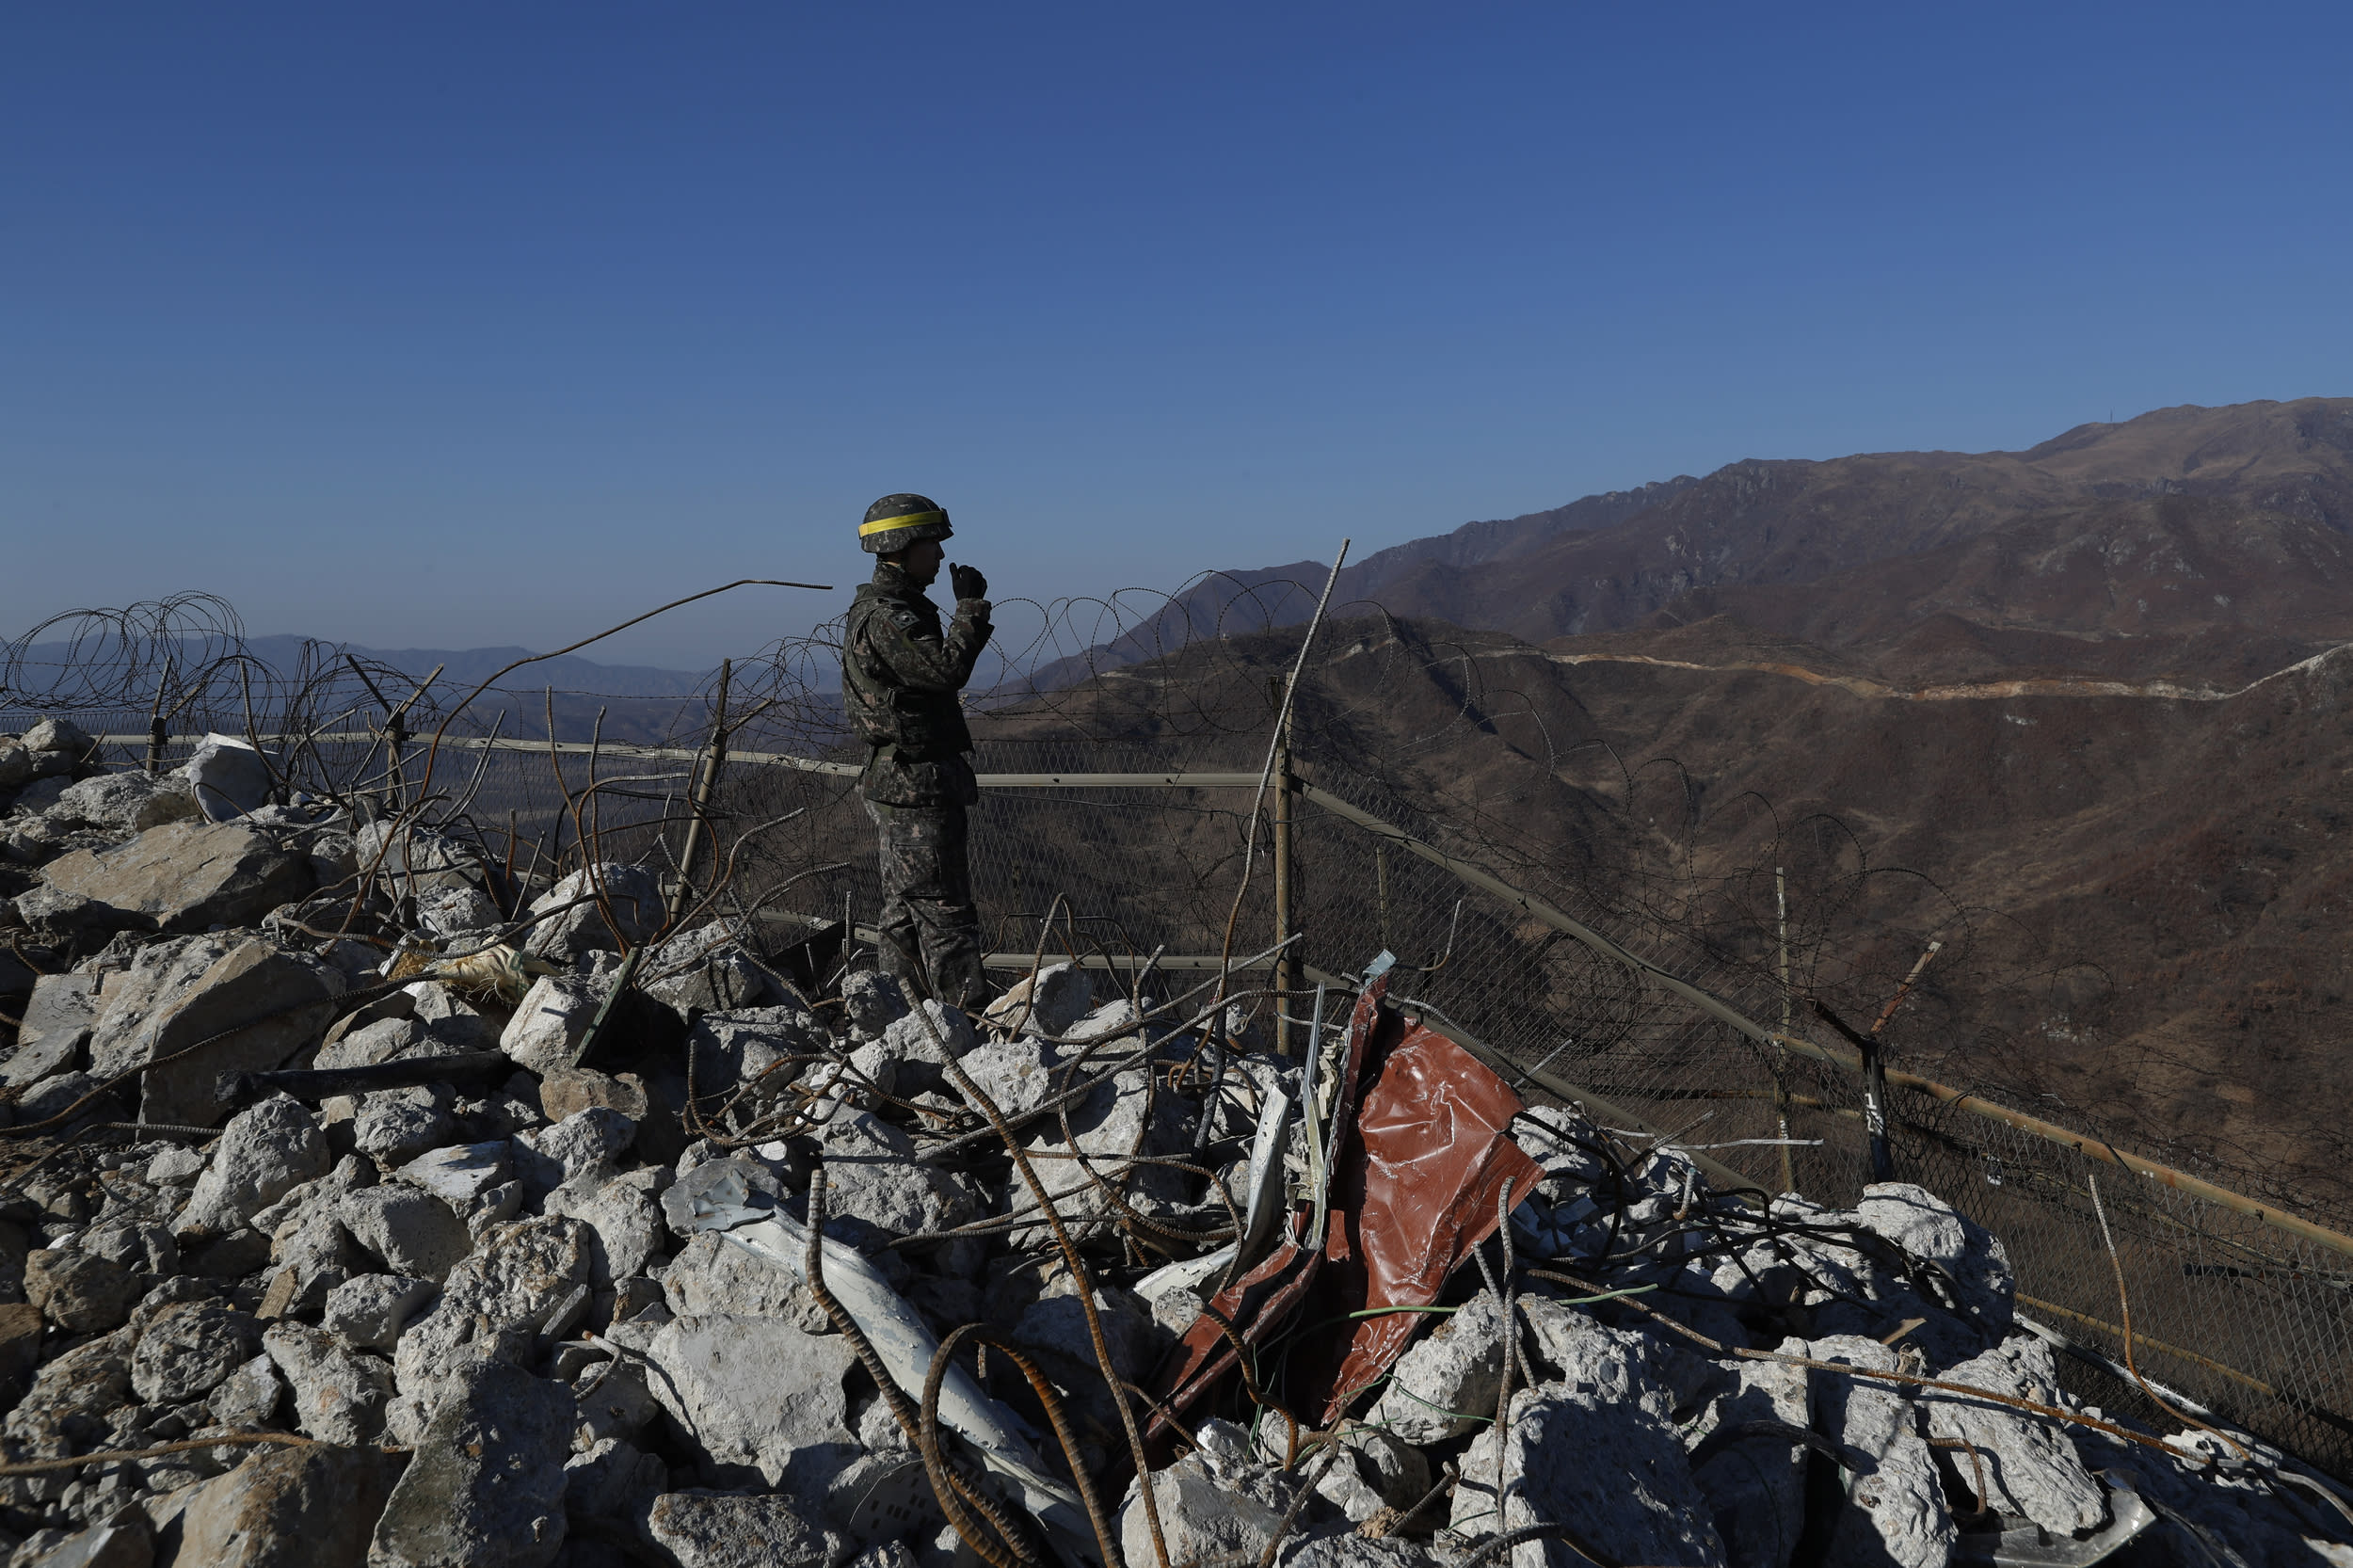 DMZ, SOUTH KOREA - DECEMBER 12: A South Korean army soldier stands guard at the South's dismantled guard post inside the Demilitarized Zone (DMZ) during a mutual on-site verification of the withdrawal of guard posts along the Demilitarized Zone (DMZ) on December 12, 2018 in DMZ, South Korea. The two Koreas have begun to destroy 20 guard posts along the heavily-fortified border between the two nations. The removal of the guard posts was decided during the 19 September Pyongyang summit between South Korean President Moon Jae-in and North Korean leader Kim Jong-un. (Photo by Jeon Heon-Kyun - Pool/Getty Images)